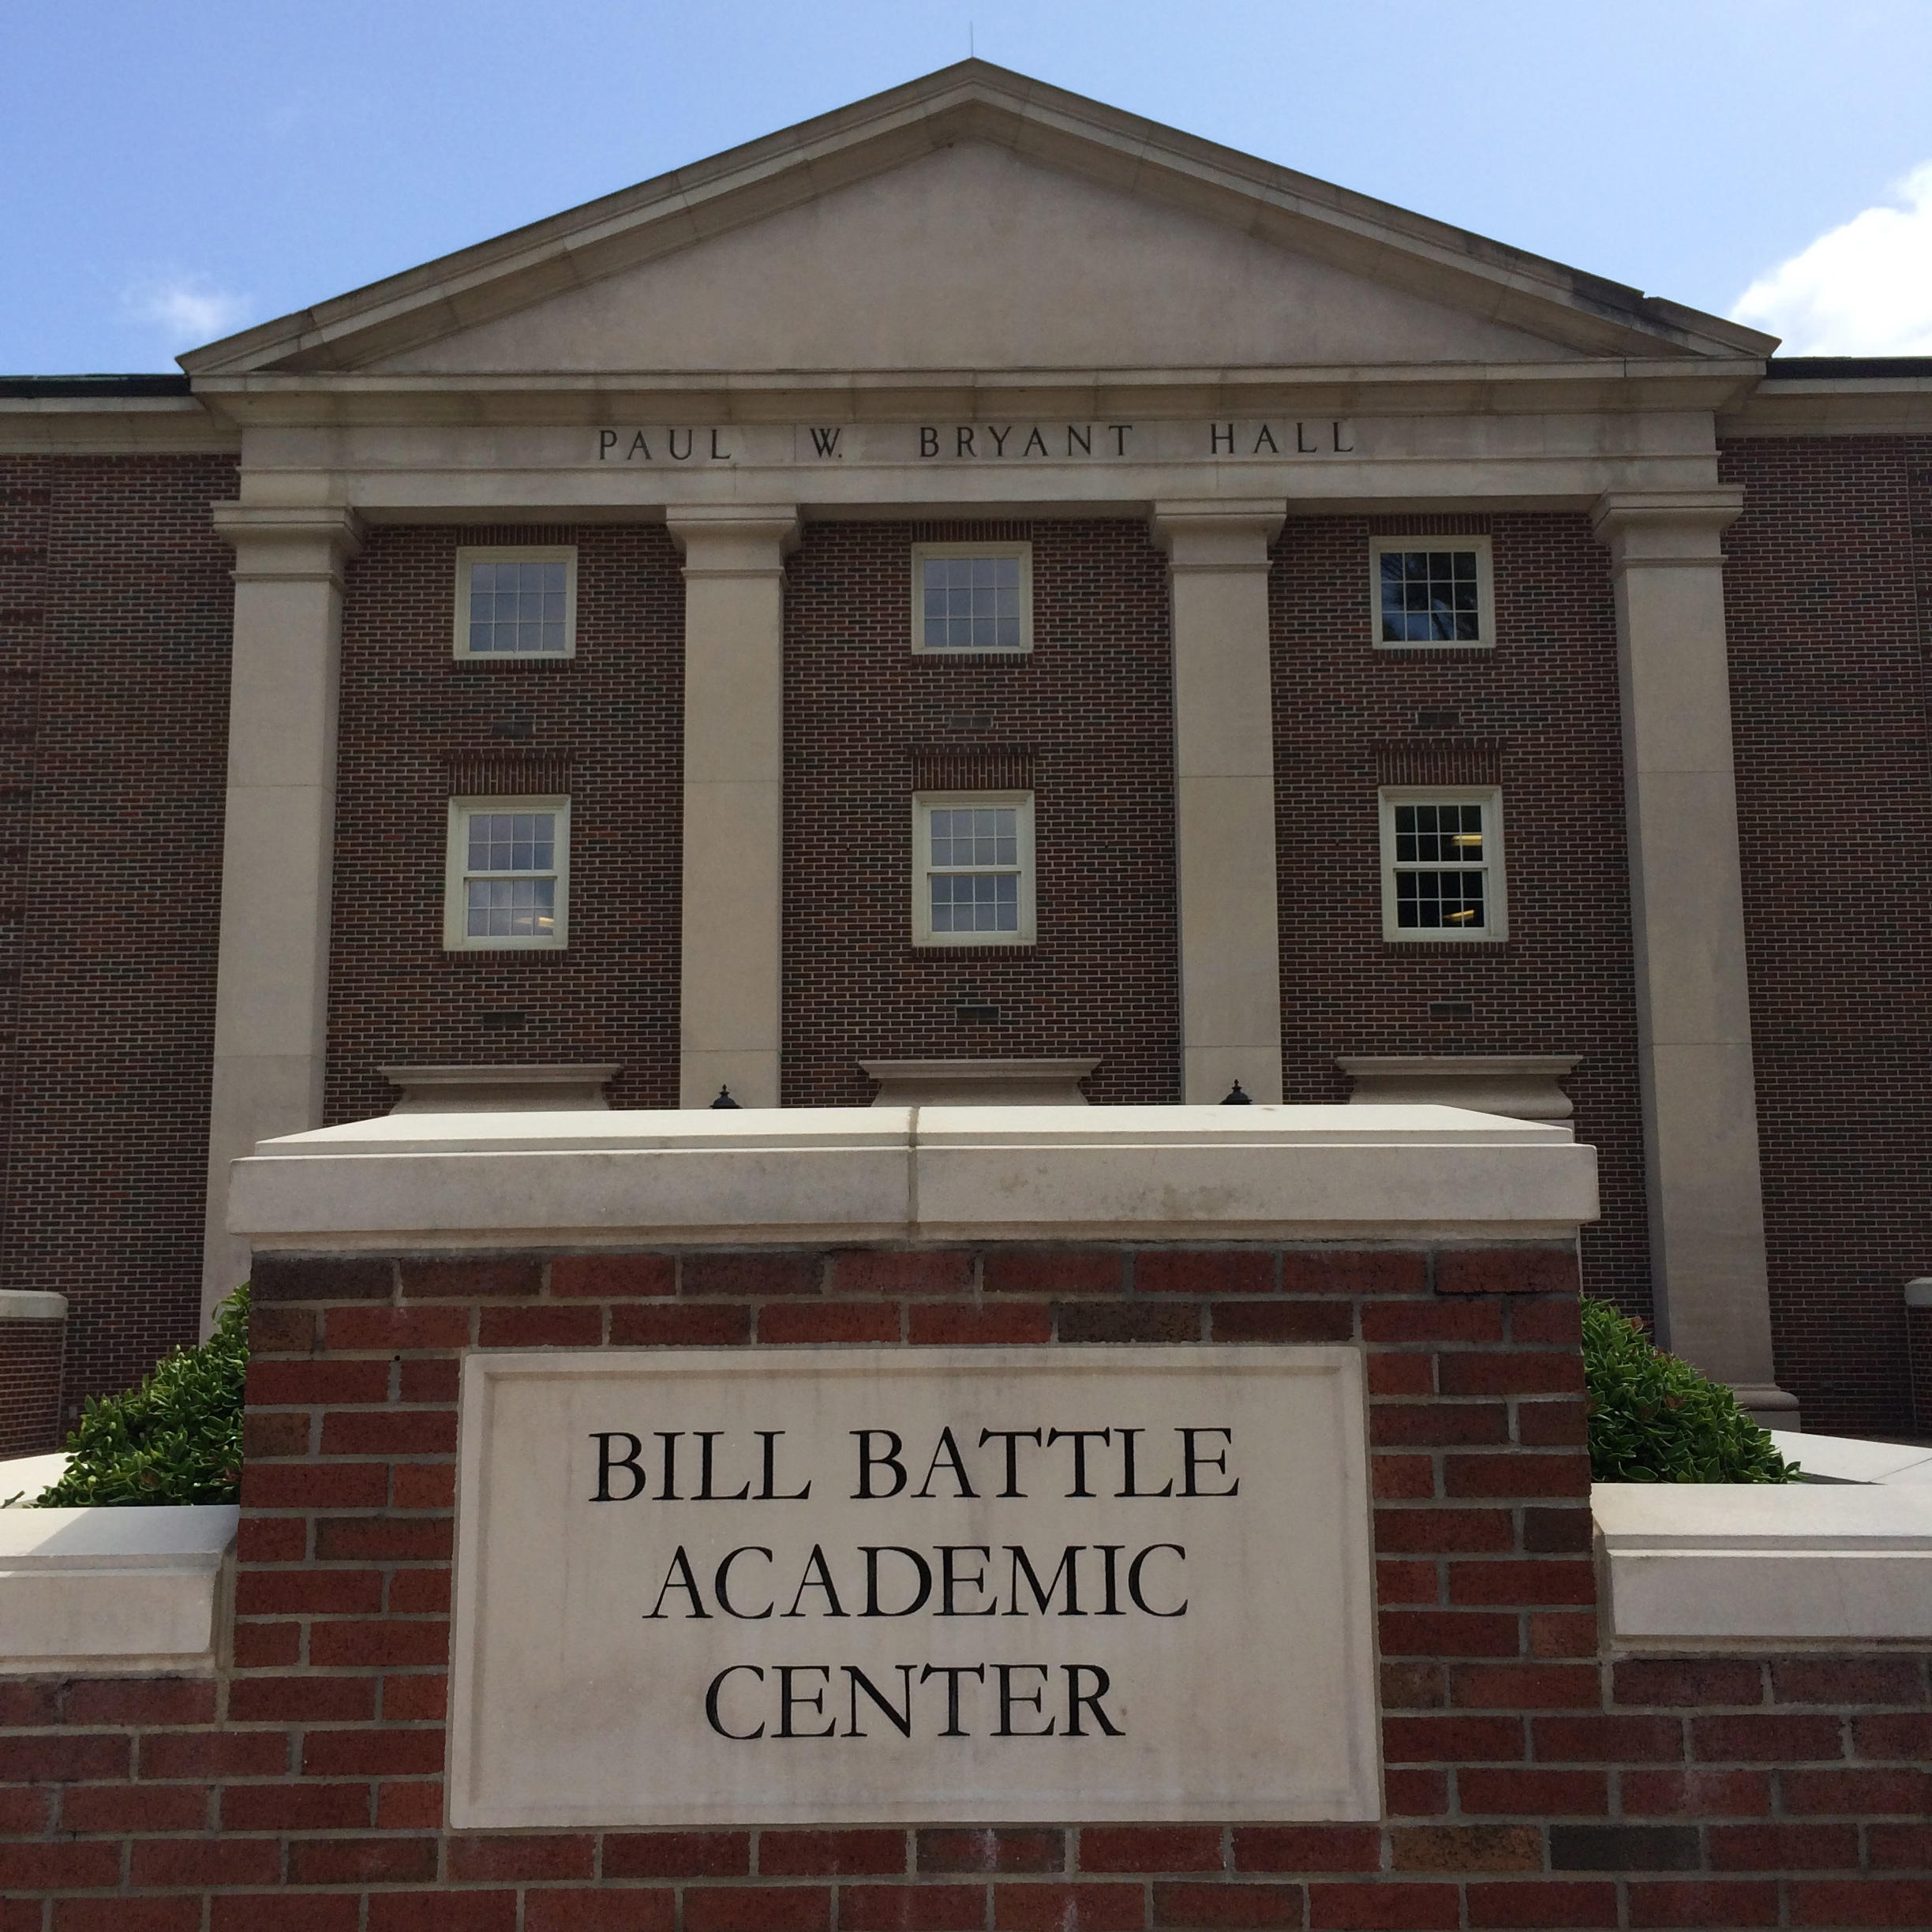 University of Alabama's Bill battle Academic Center